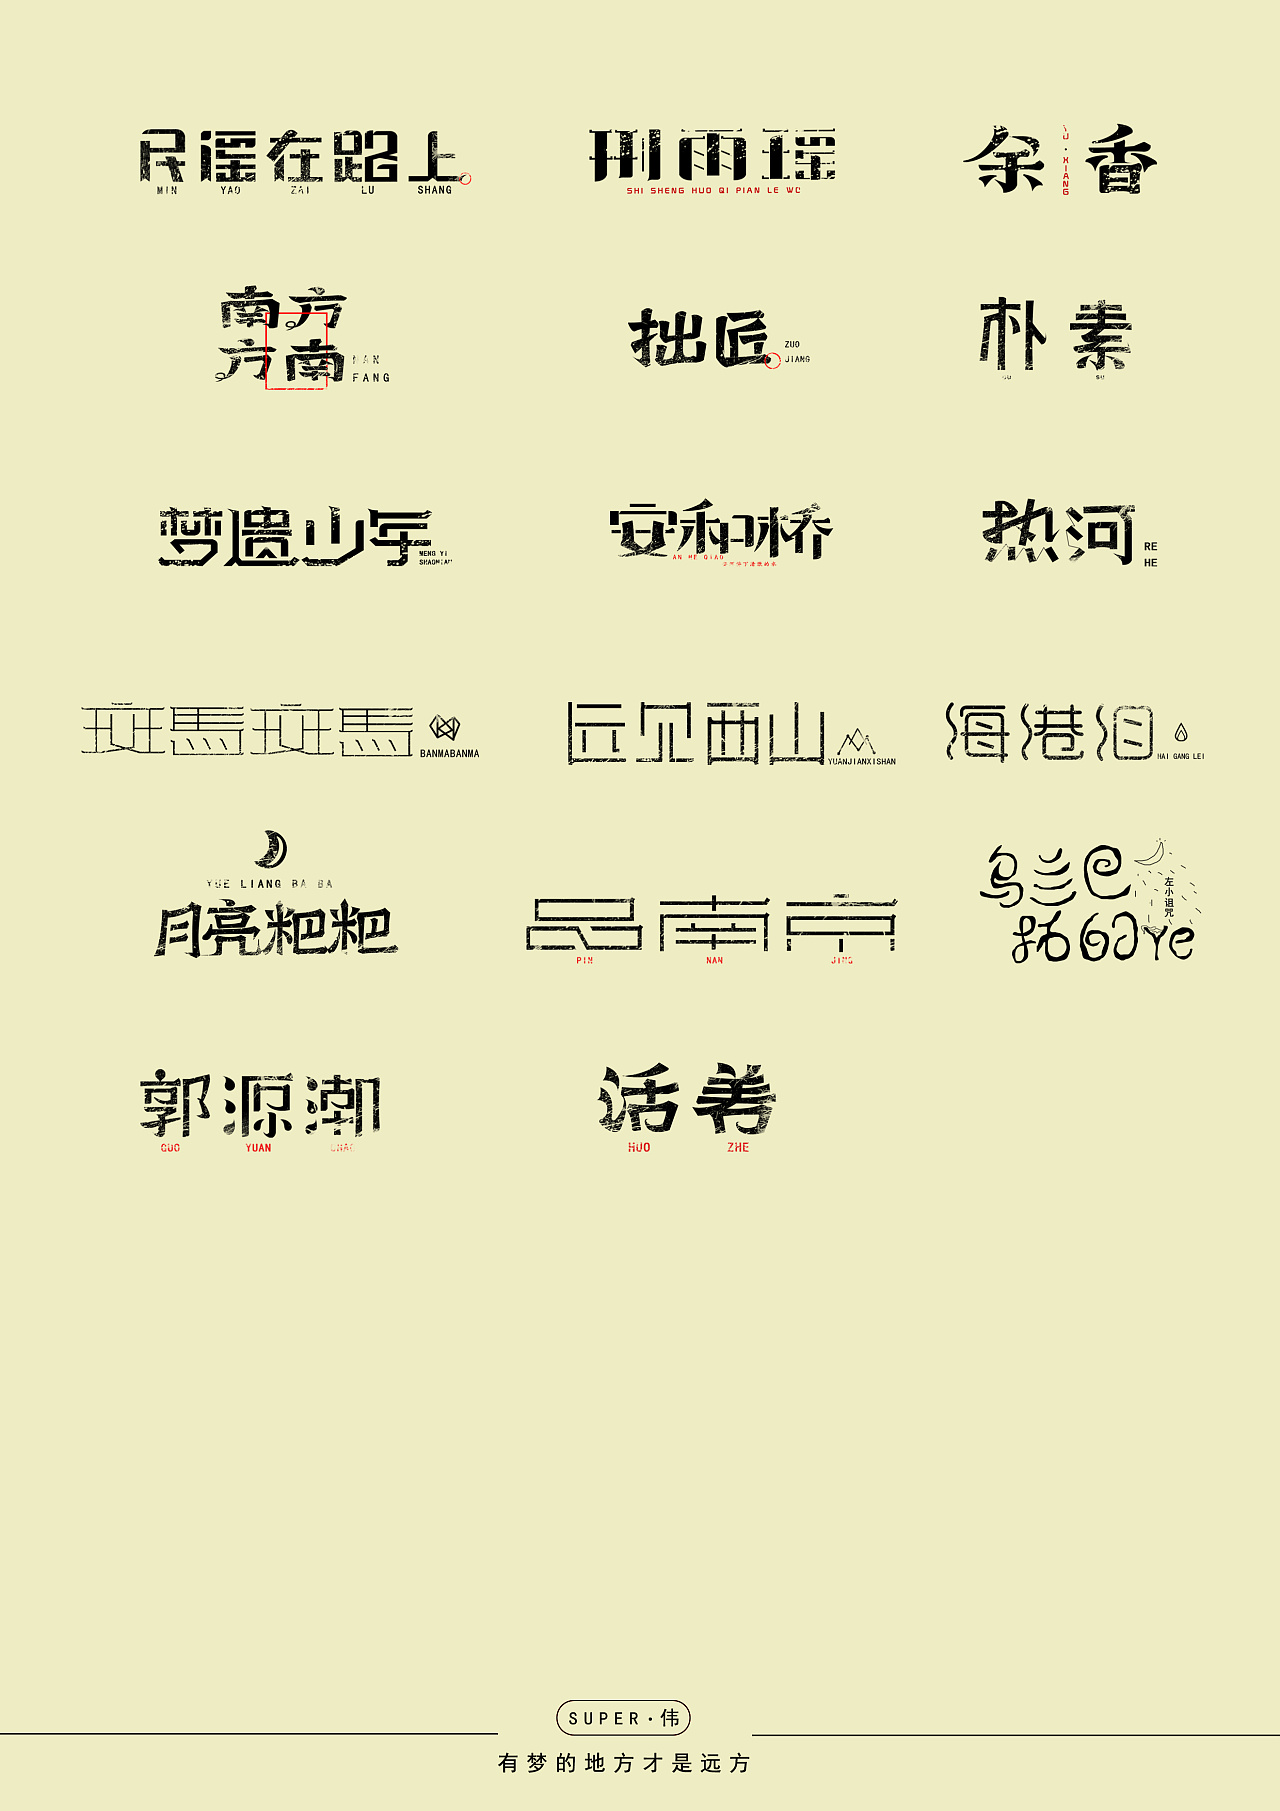 chinesefontdesign.com 2017 09 04 12 30 22 460856 20P The Chinese font design collection in August 2017